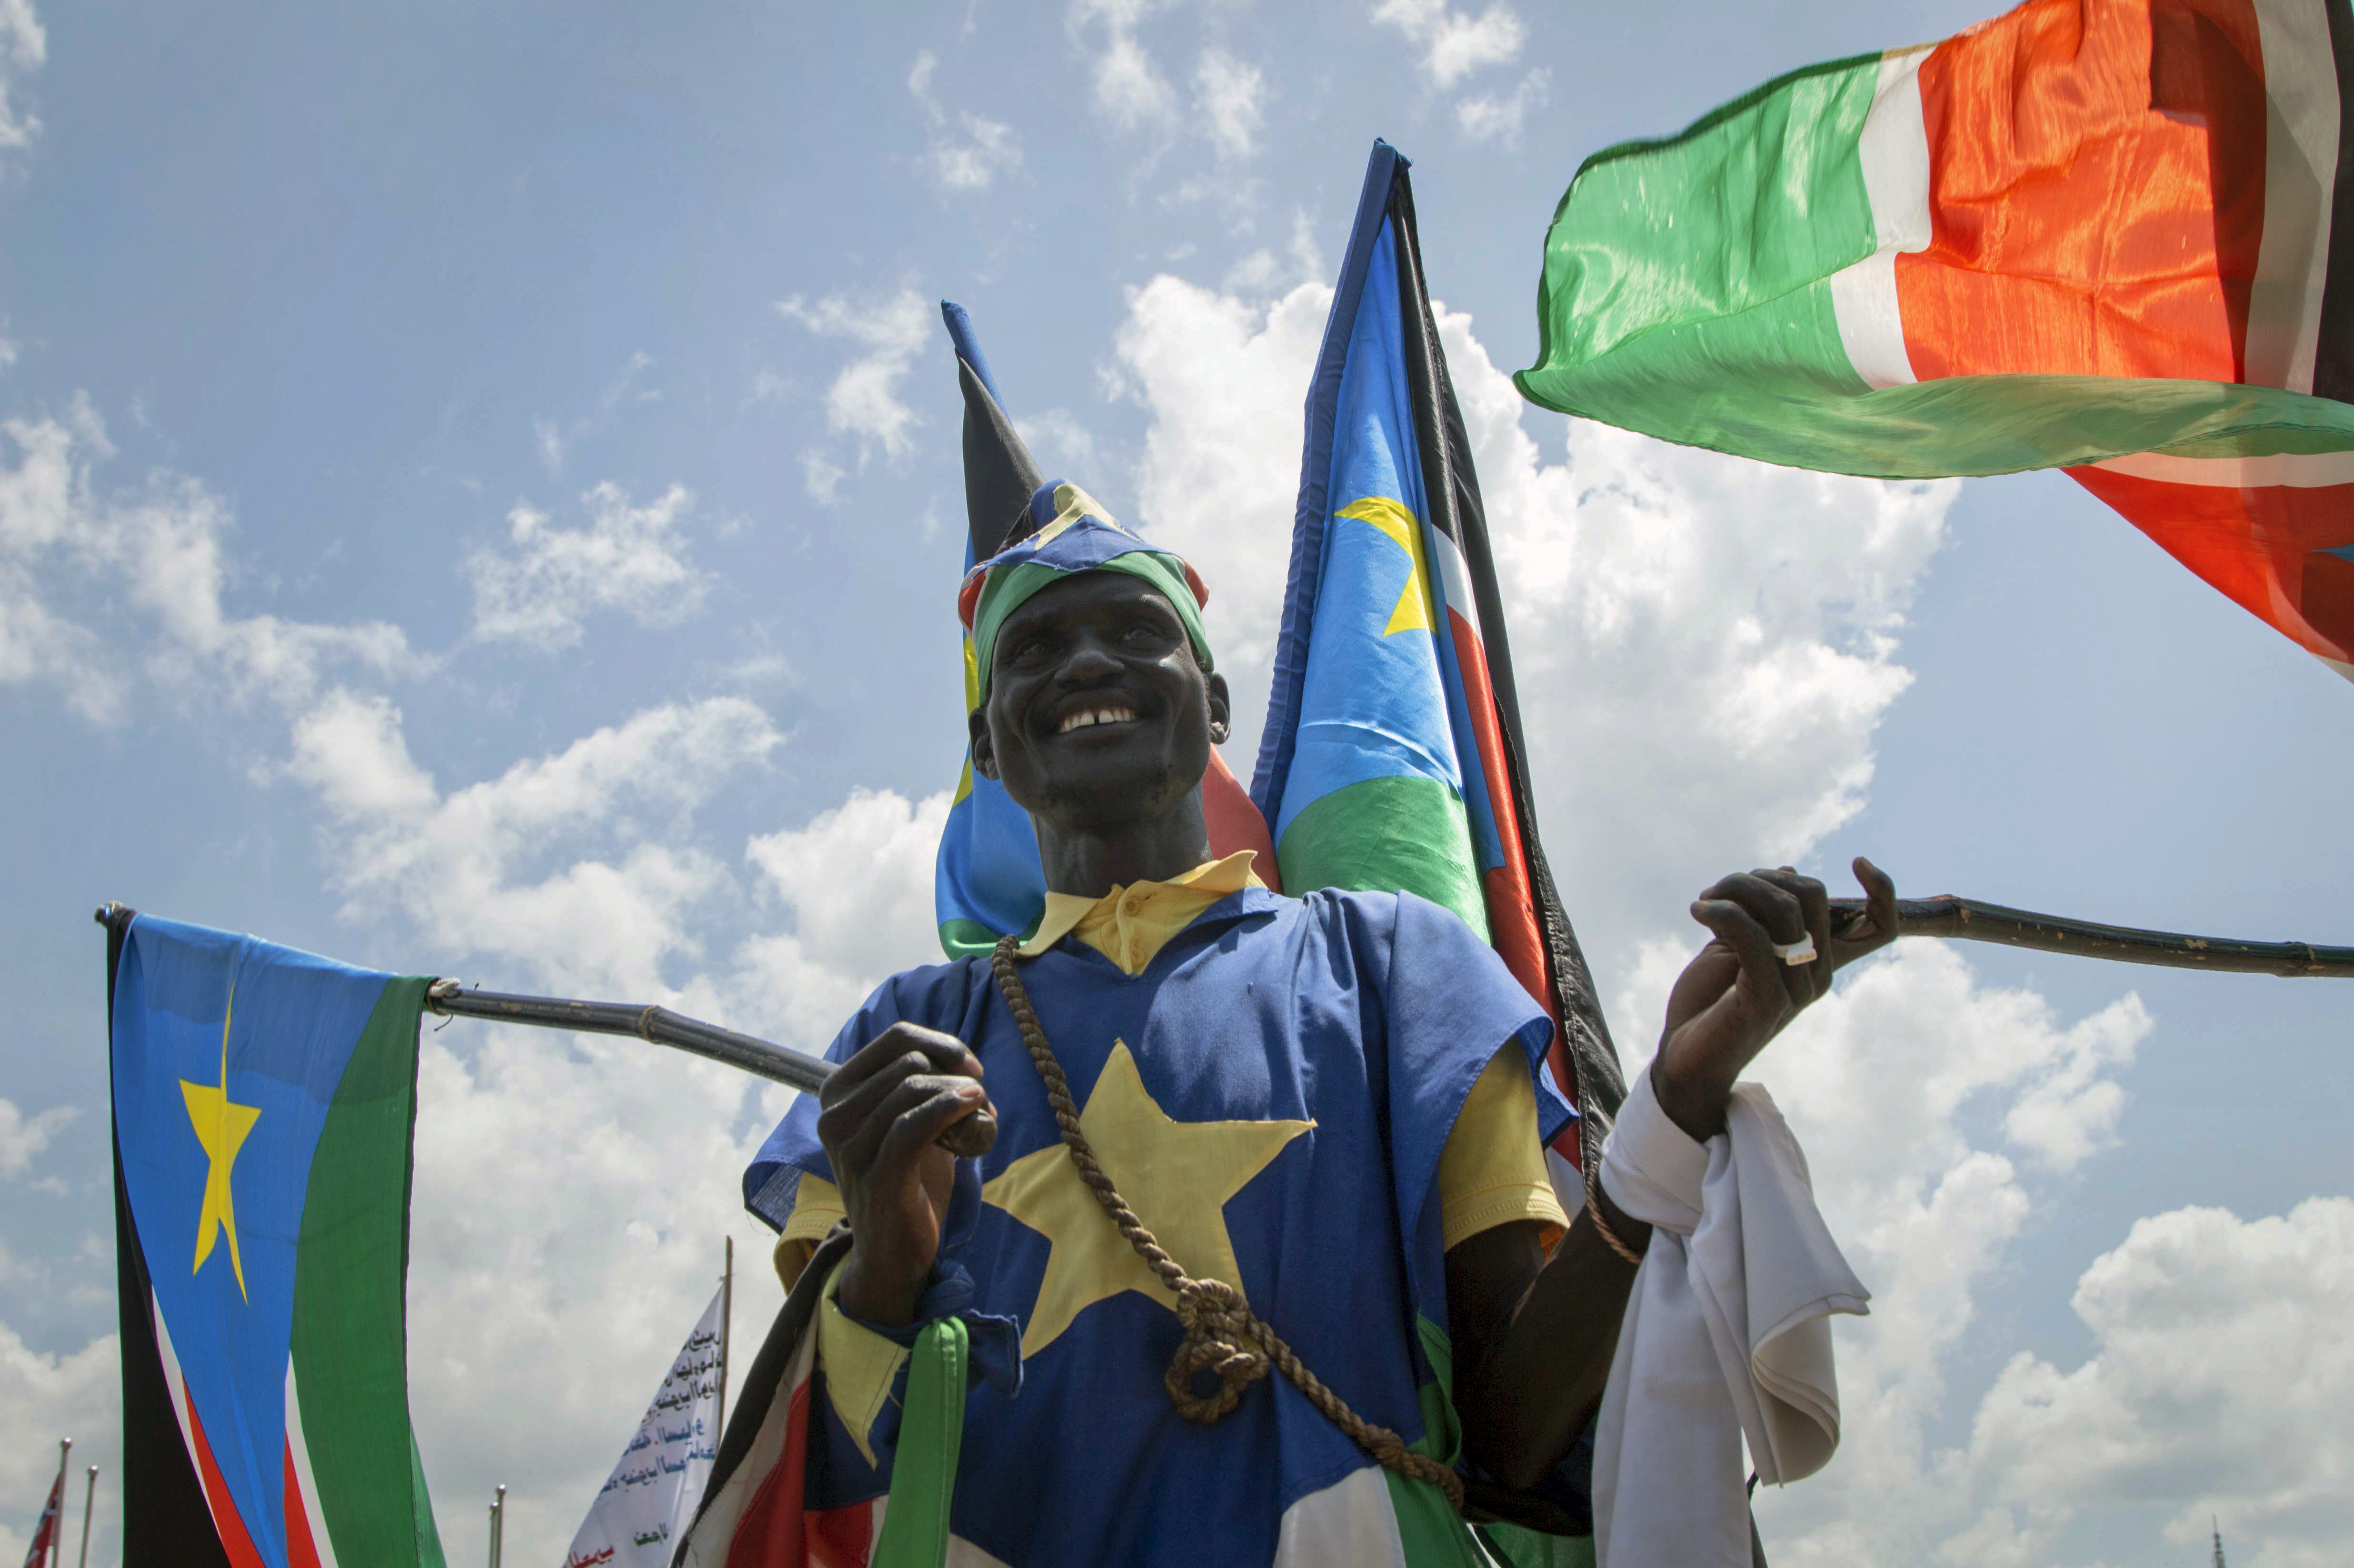 A man waves South Sudanese national flags during peace celebrations in the capital Juba, South Sudan Wednesday, Oct. 31, 2018. For the first time since fleeing South Sudan more than two years ago, opposition leader Riek Machar returned on Wednesday to take part in a nationwide peace celebration. (AP Photo/Bullen Chol)